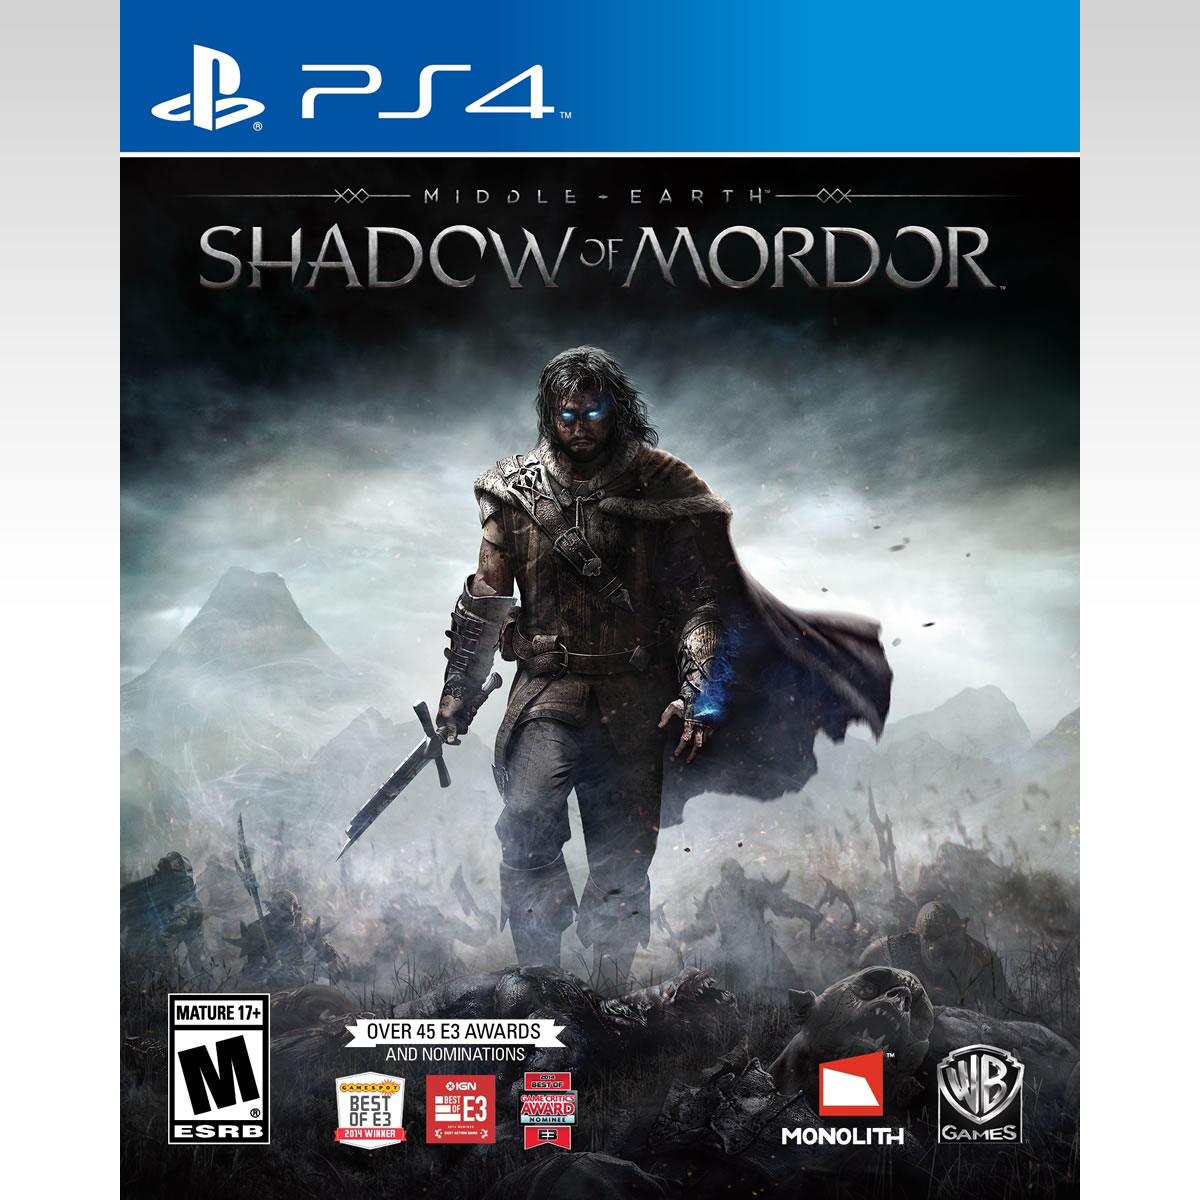 MIDDLE EARTH: SHADOW OR MORDOR (PS4)